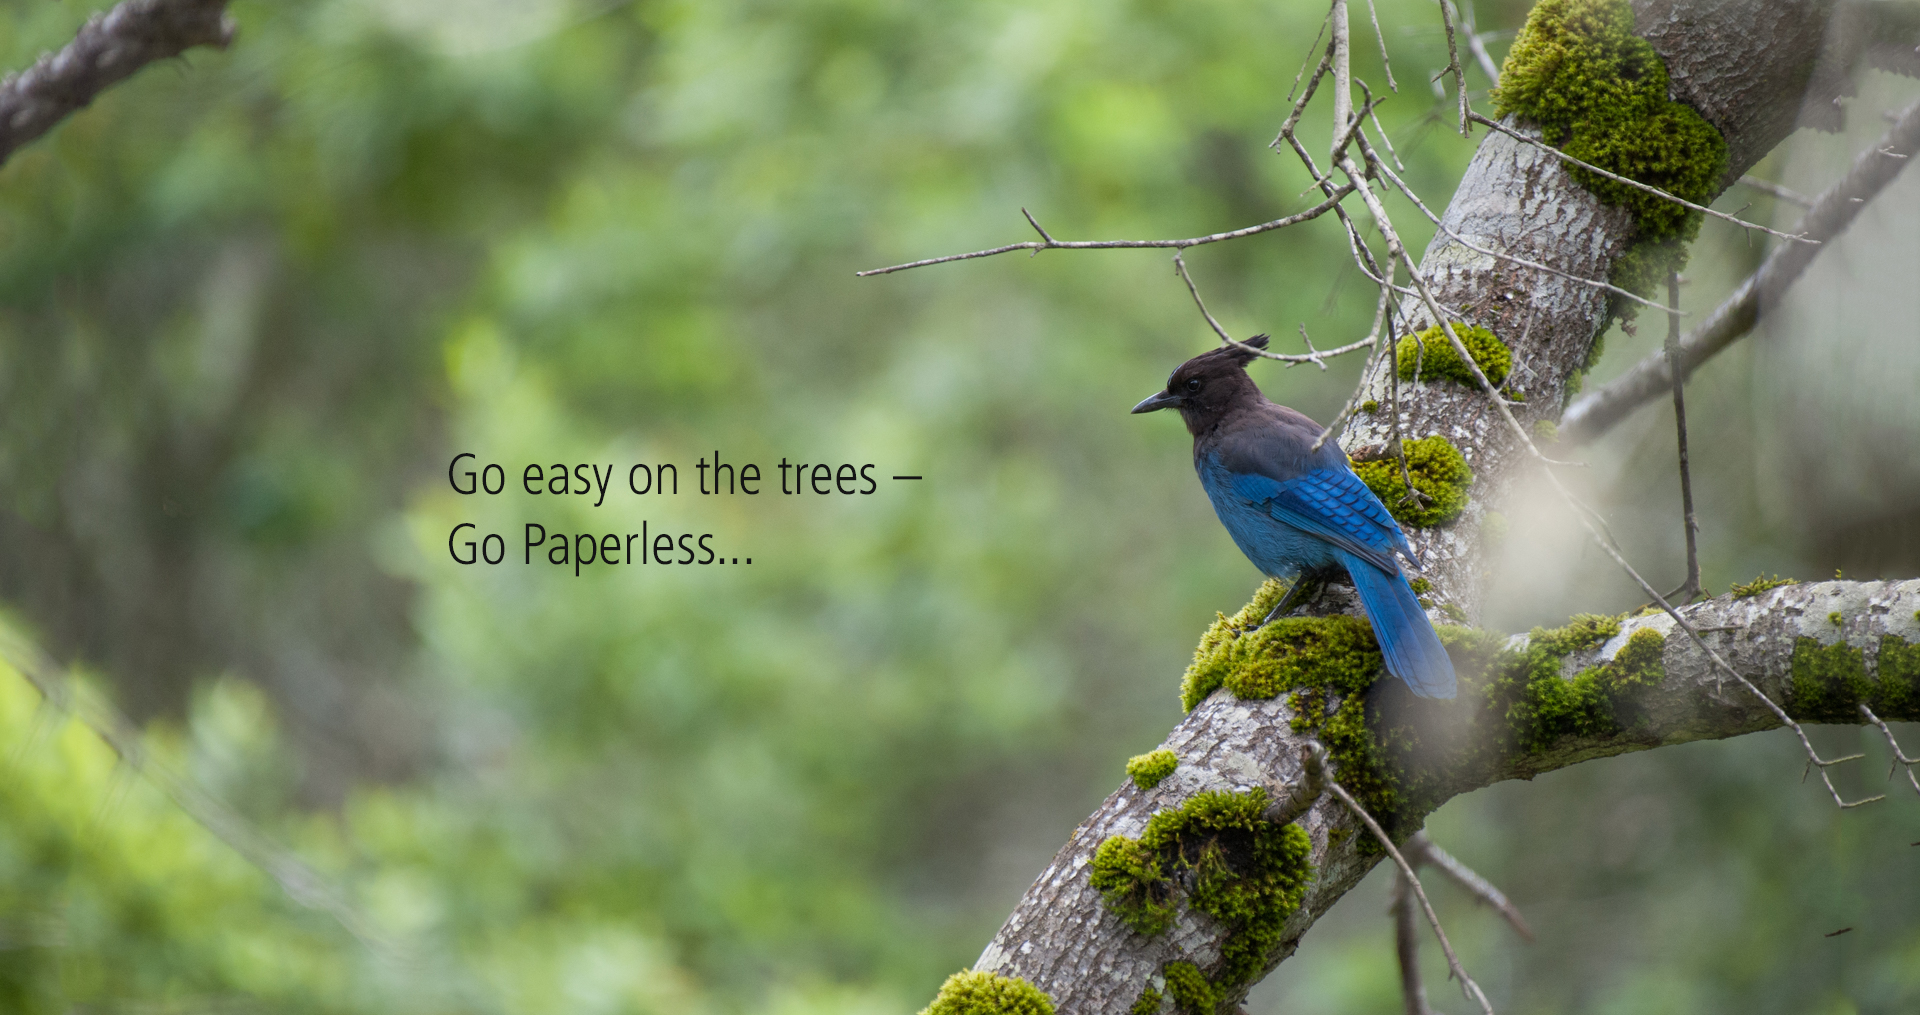 Go easy on the trees–Go paperless...